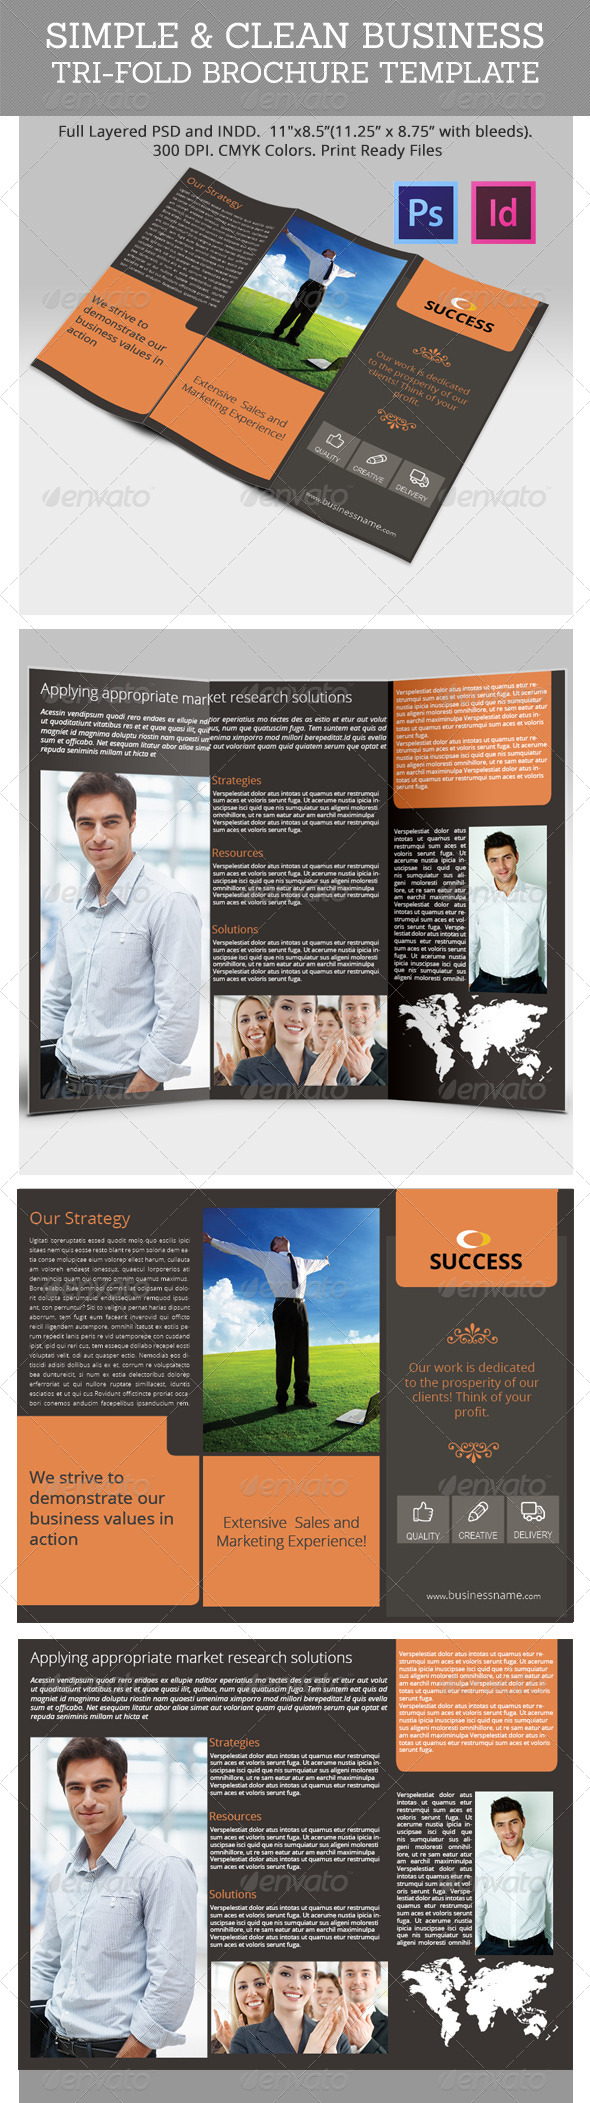 Simple & Clean Business Tri-Fold Brochure Template - Corporate Brochures